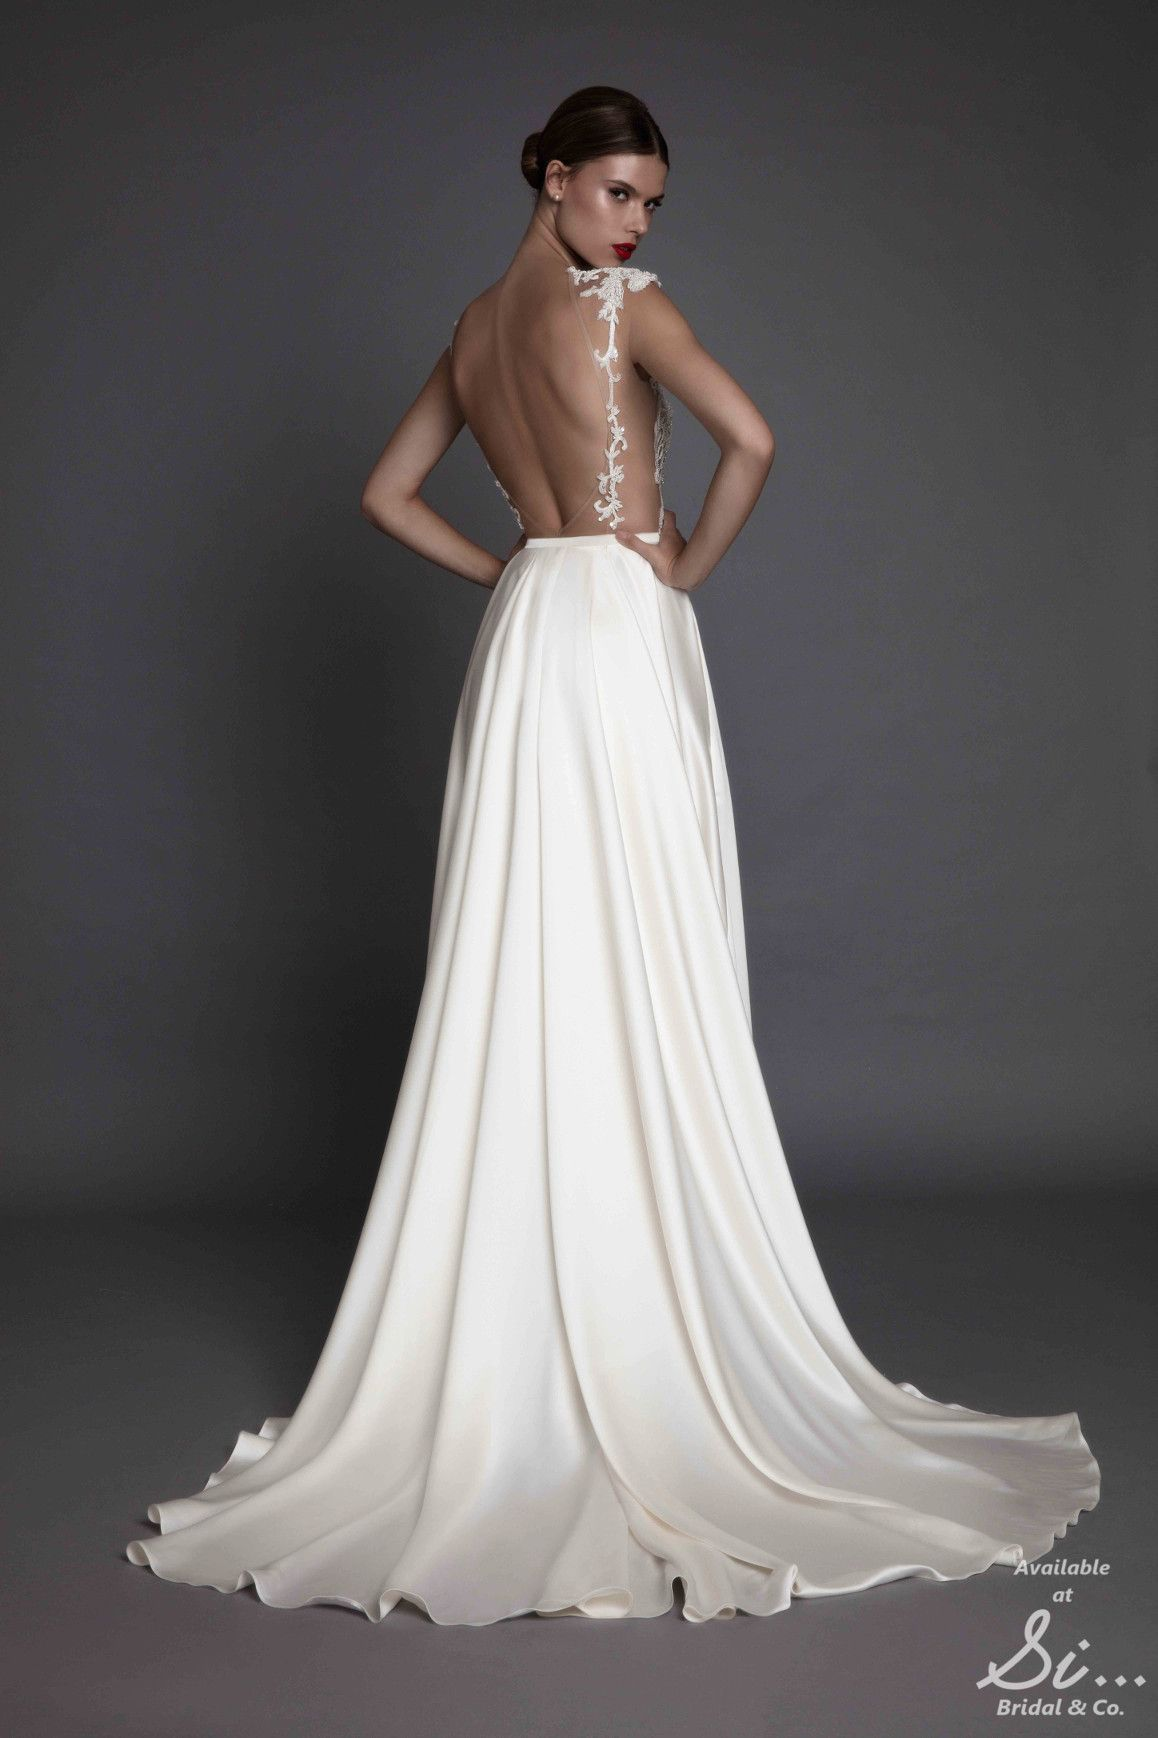 Name brand wedding dresses  Aurora  Muse by BERTA  Brand new luxury diffusion line by the